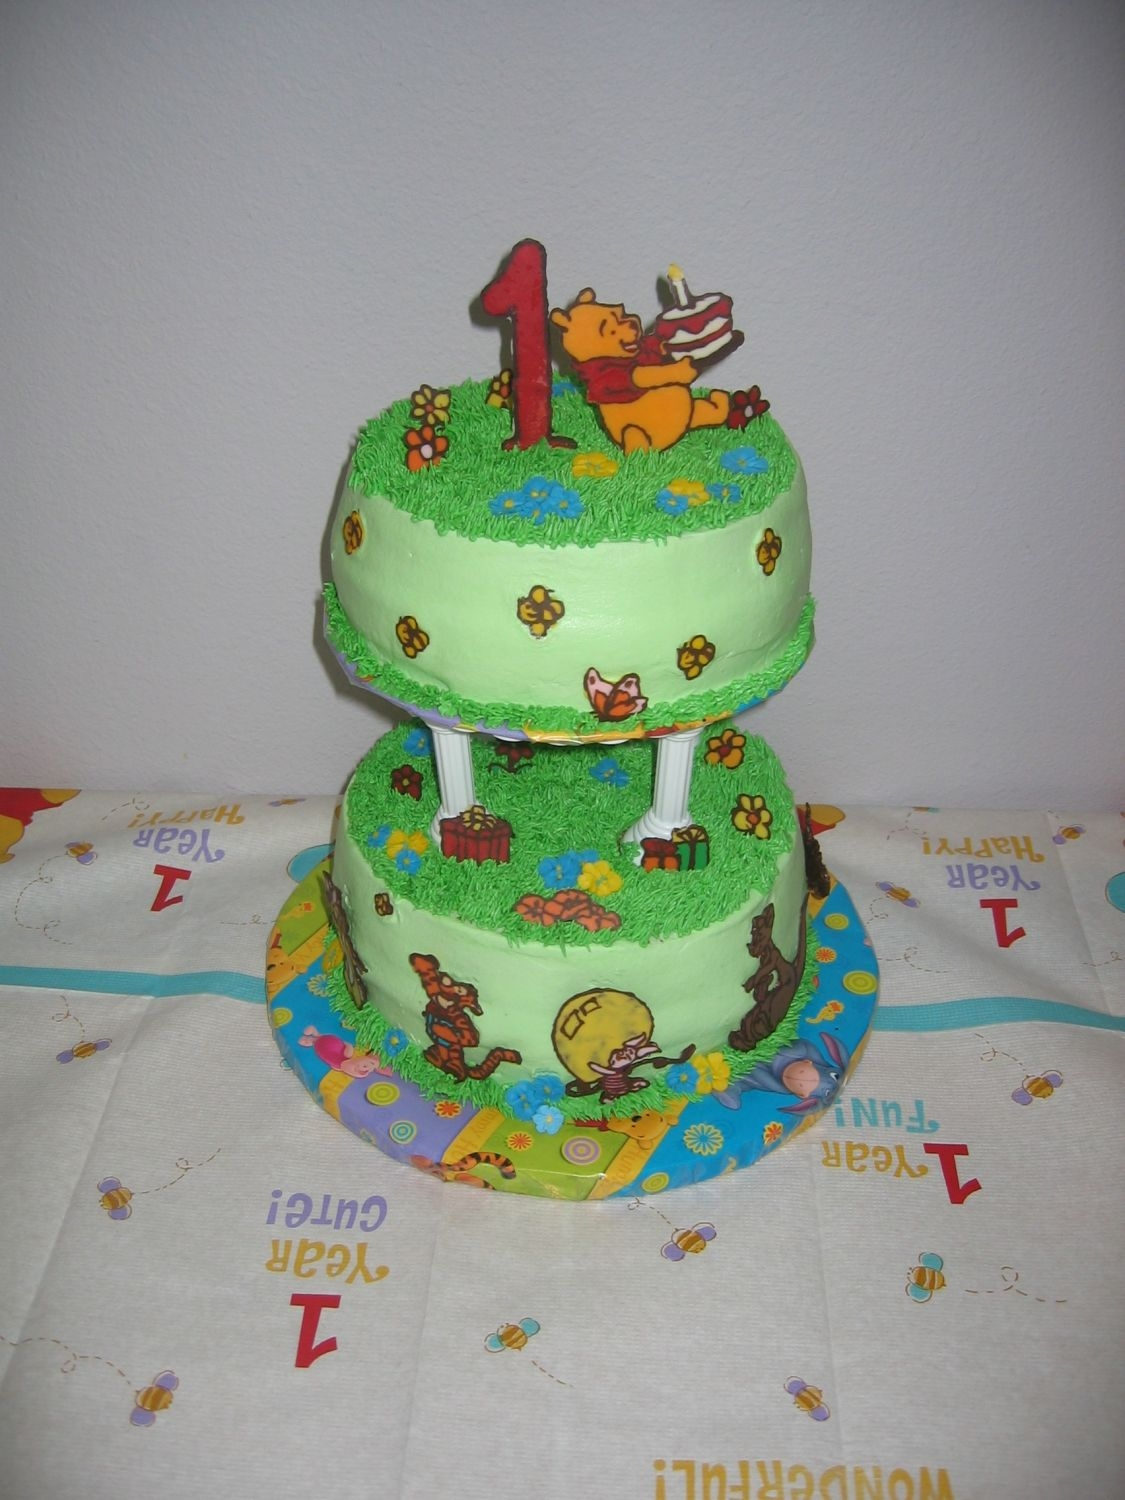 Pooh Cake Top View